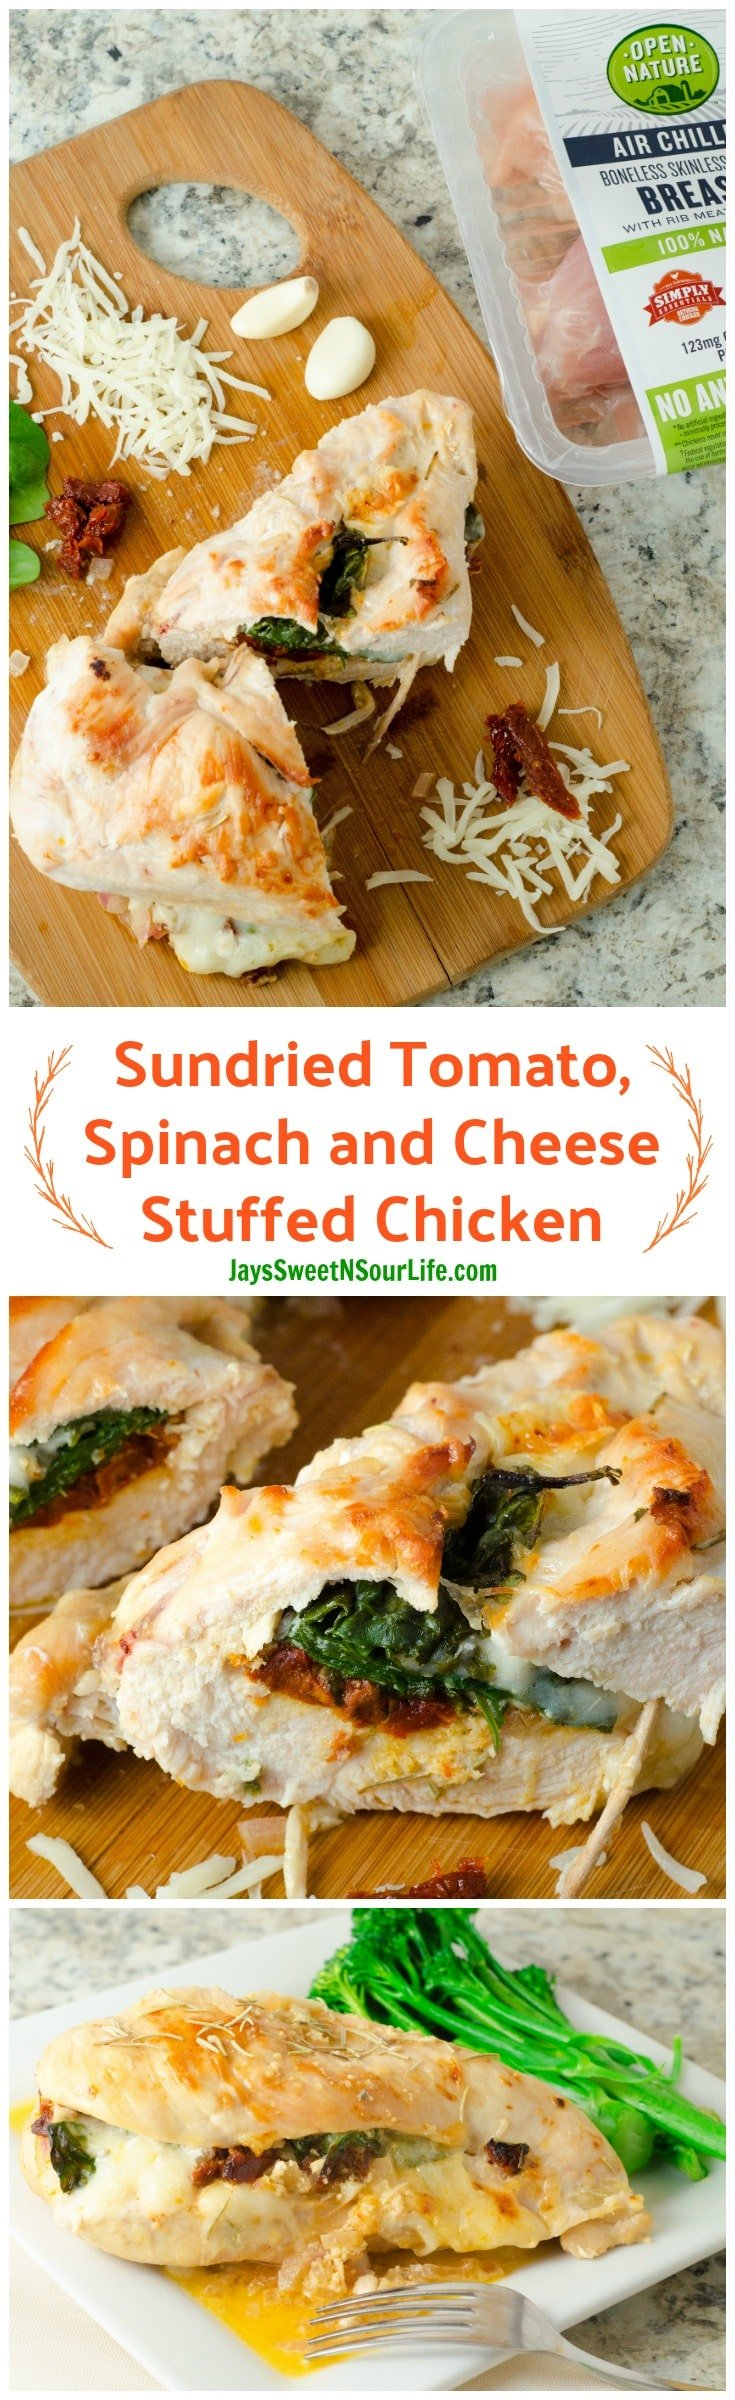 Try this deliciously juicy Sundried Tomato, Spinach, and Cheese Stuffed Chicken. Made with Open Nature® Air Chilled Chicken, avail. exclusively in @Safeway. Topped with a Creamy Lemon Butter Sauce. #spon #recipe